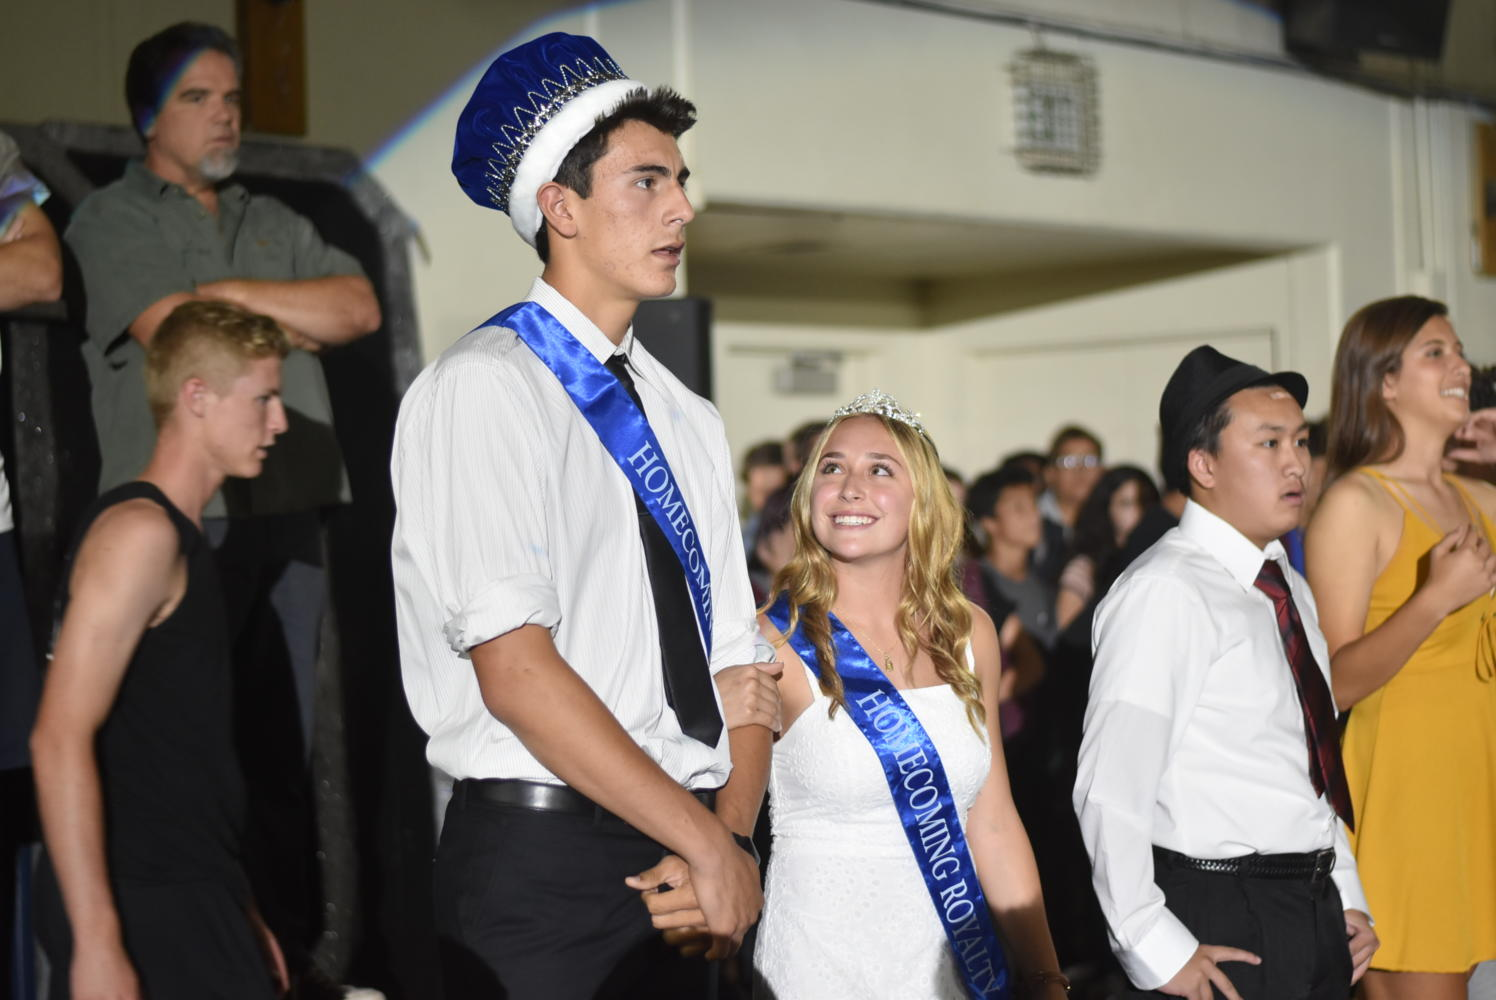 Ciera Muscarella, junior homecoming princess, looks up at Jamie Jaquez, junior homecoming prince.